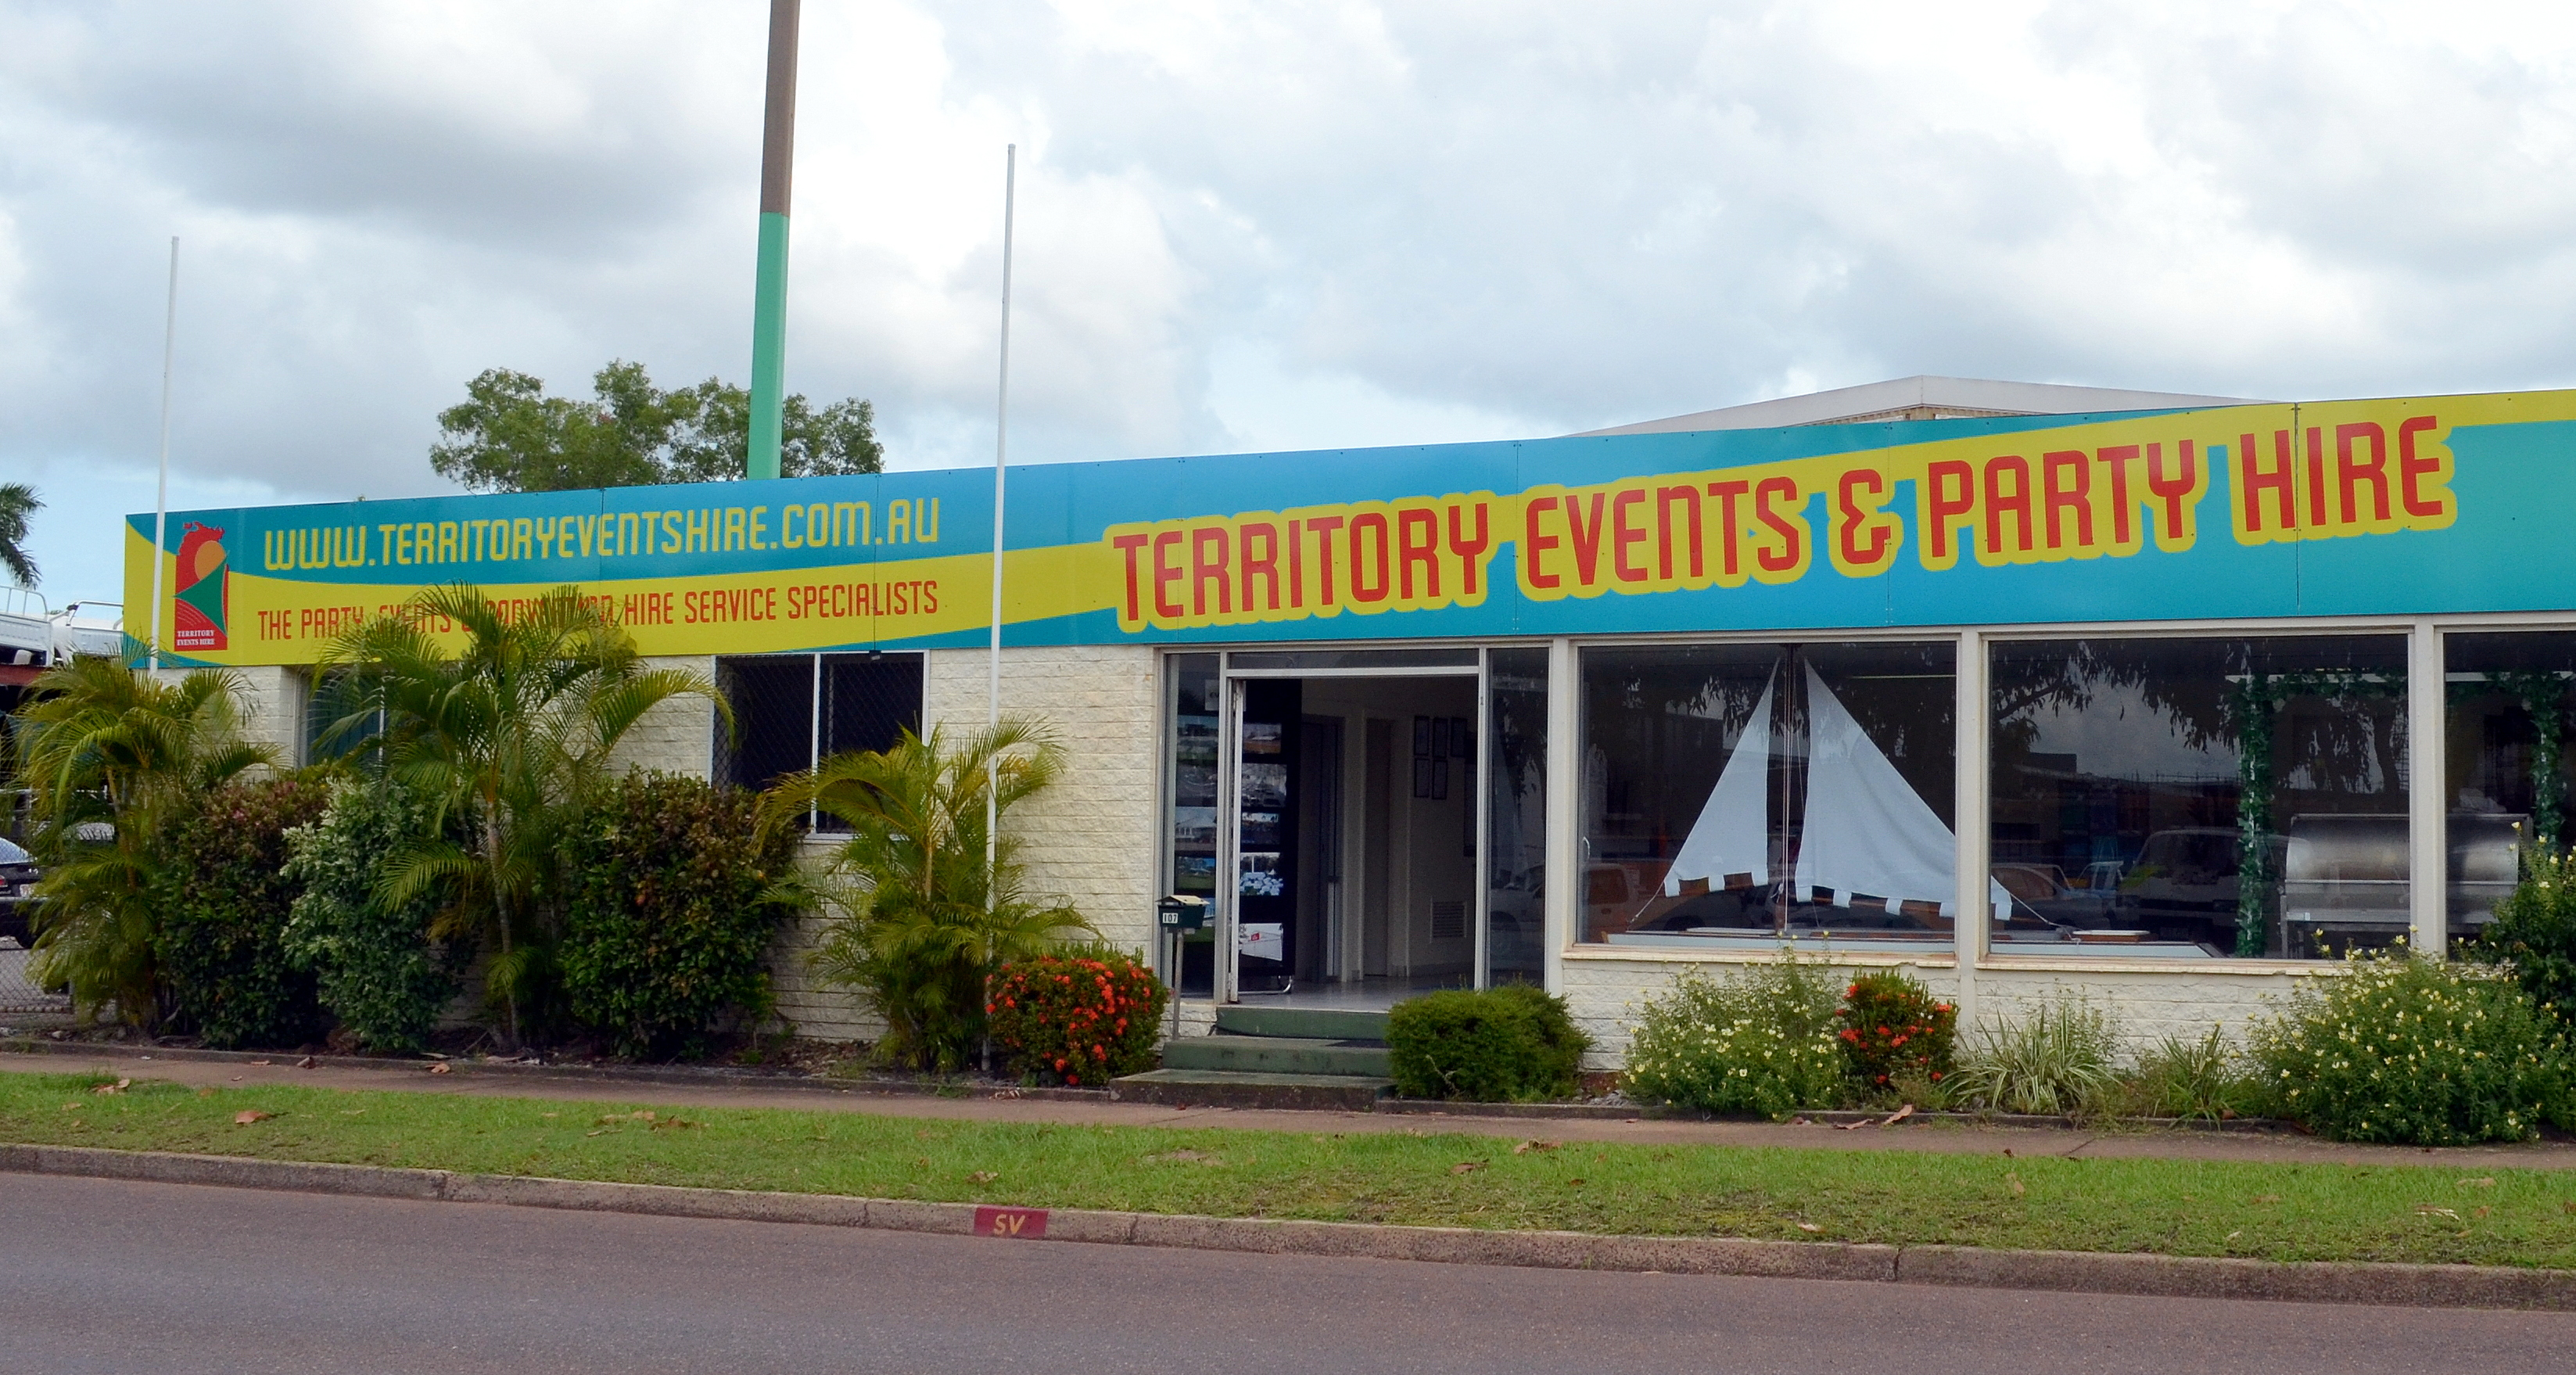 territory events and party hire